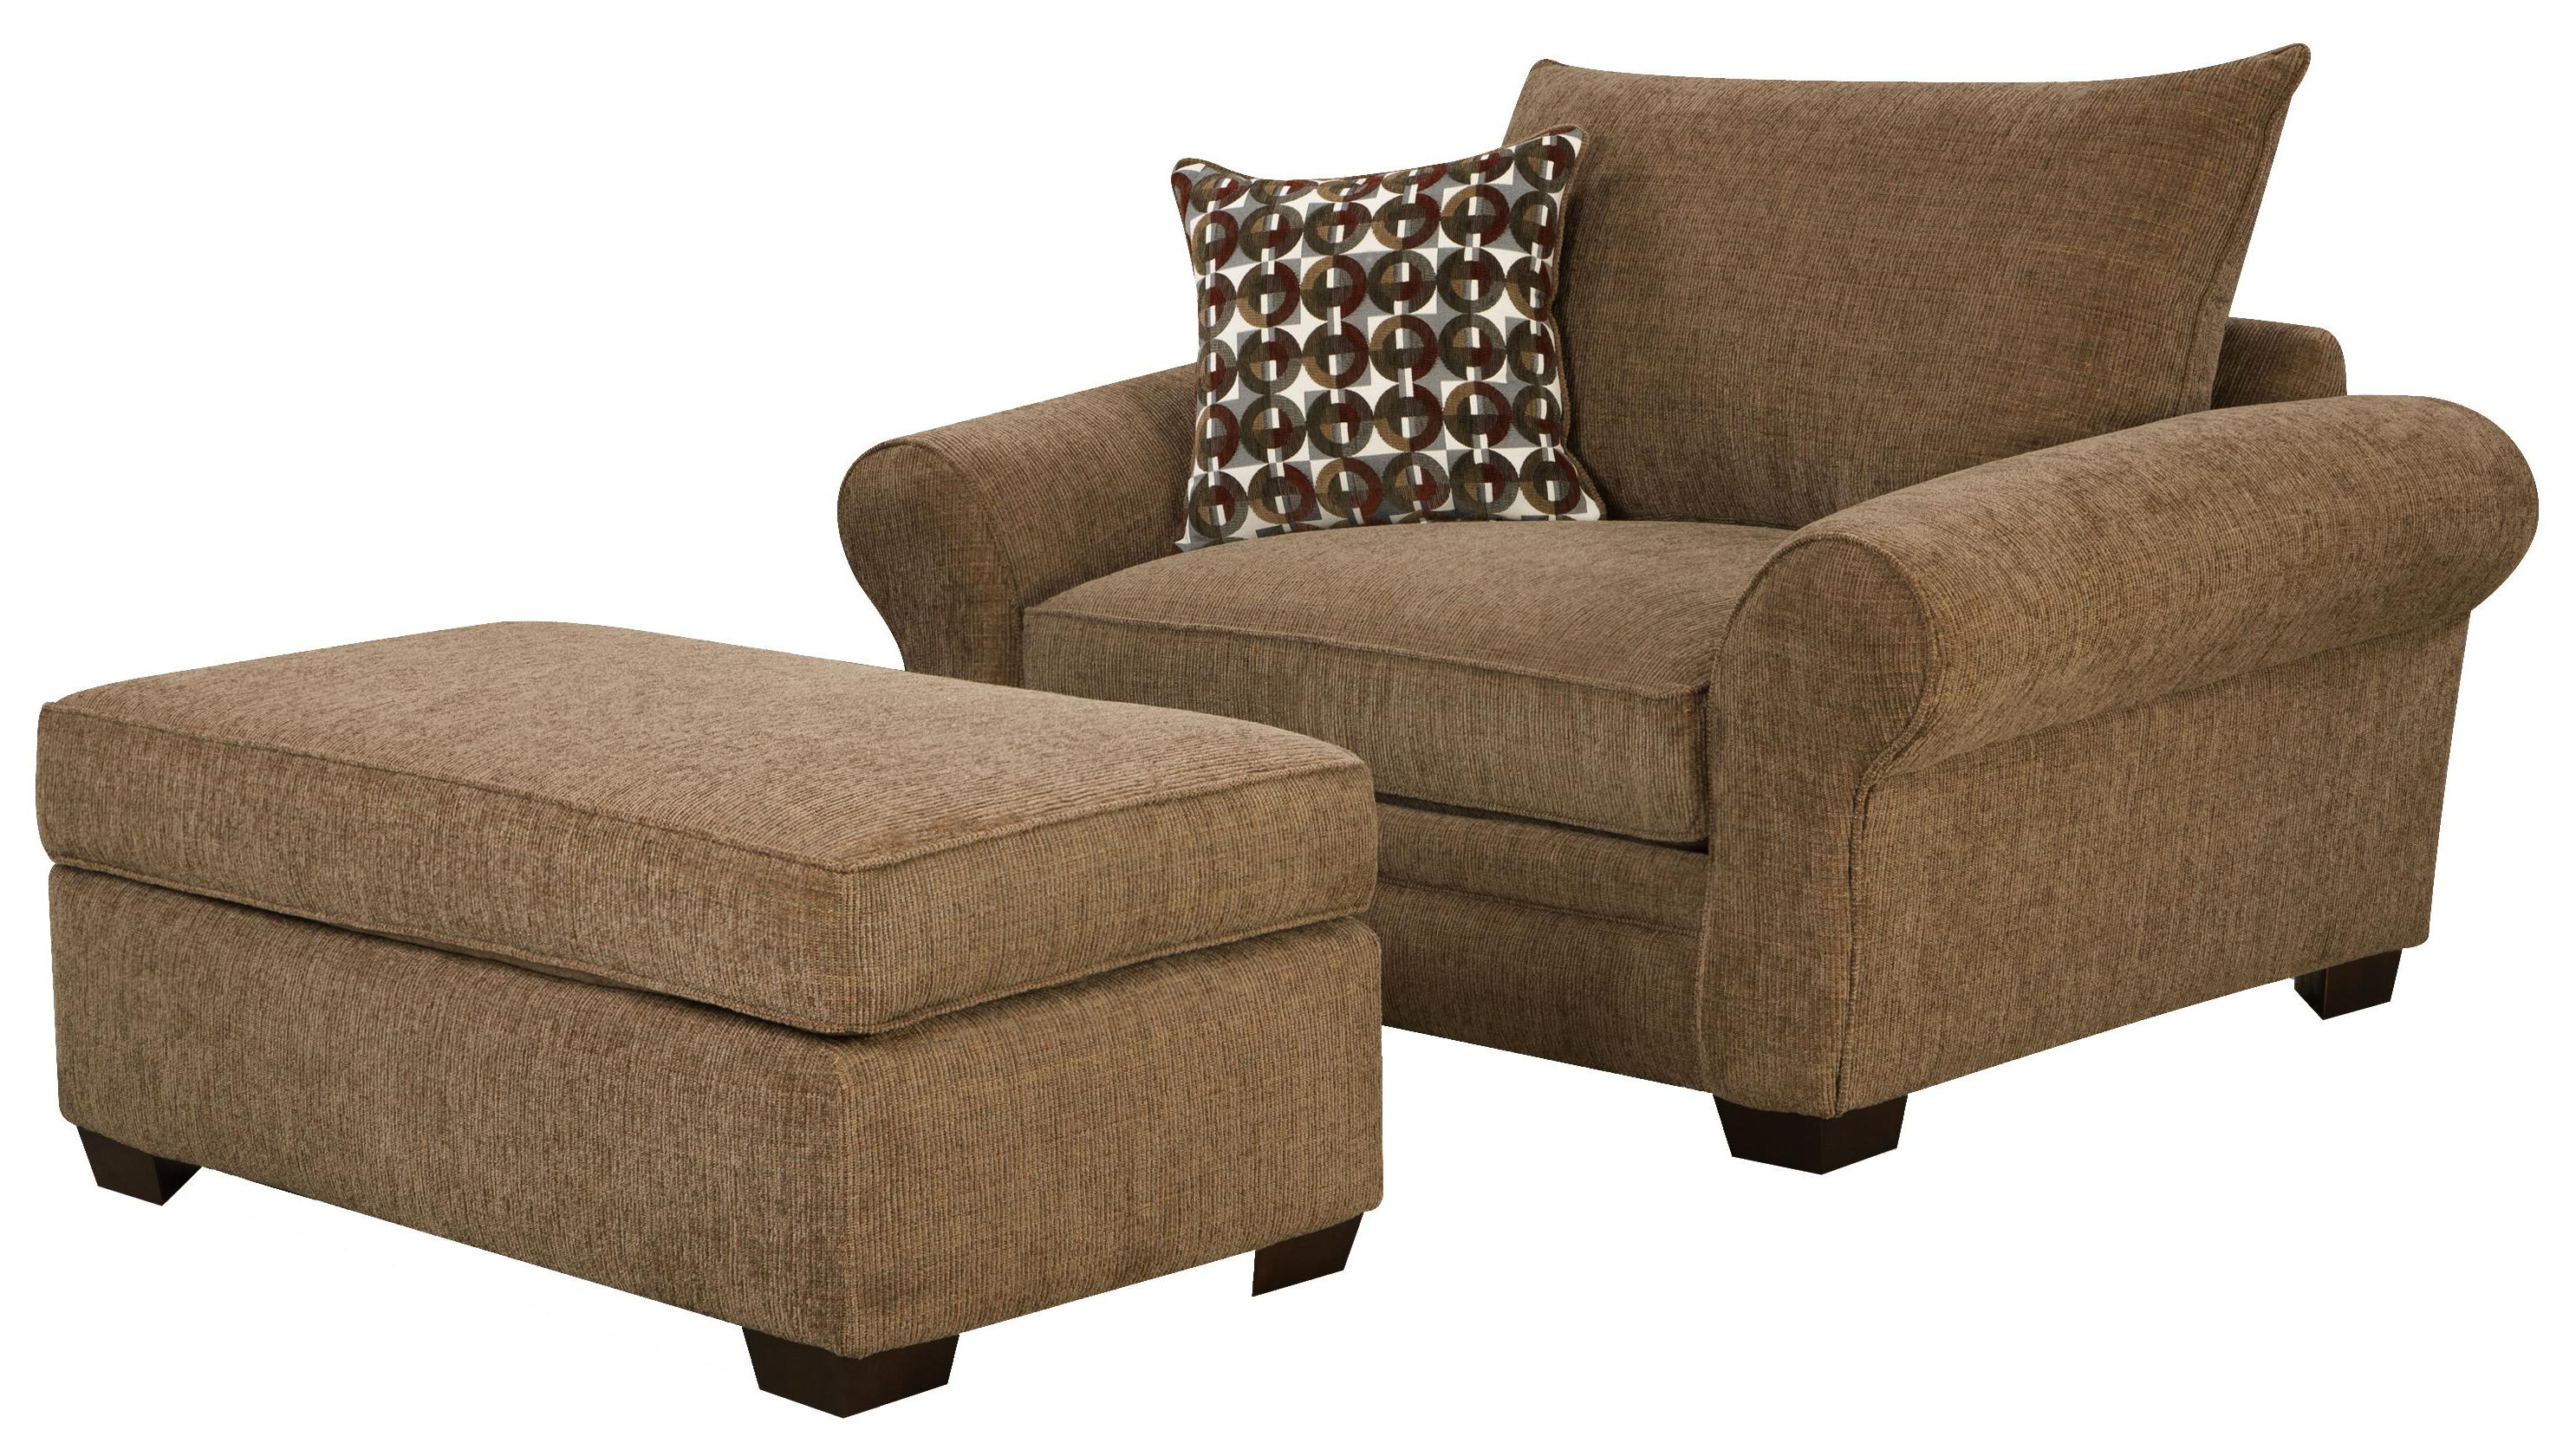 Sofa Chair With Ottoman Pertaining To Best And Newest Extra Large Chair And A Half & Ottoman Set For Casual Styled Living (View 14 of 20)